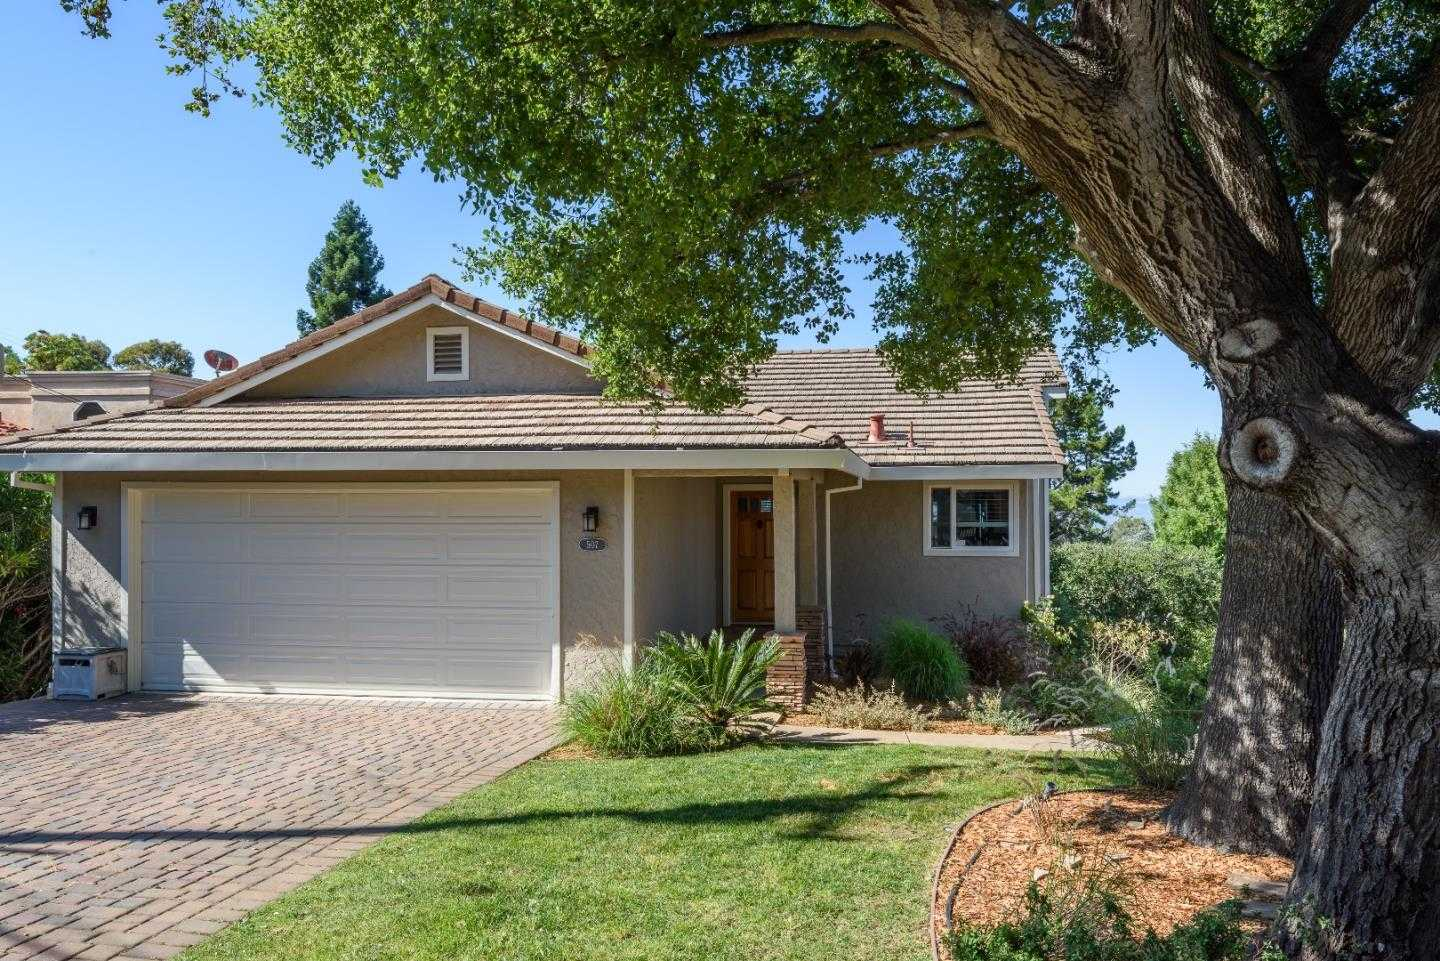 $1,899,000 - 4Br/3Ba -  for Sale in Redwood City